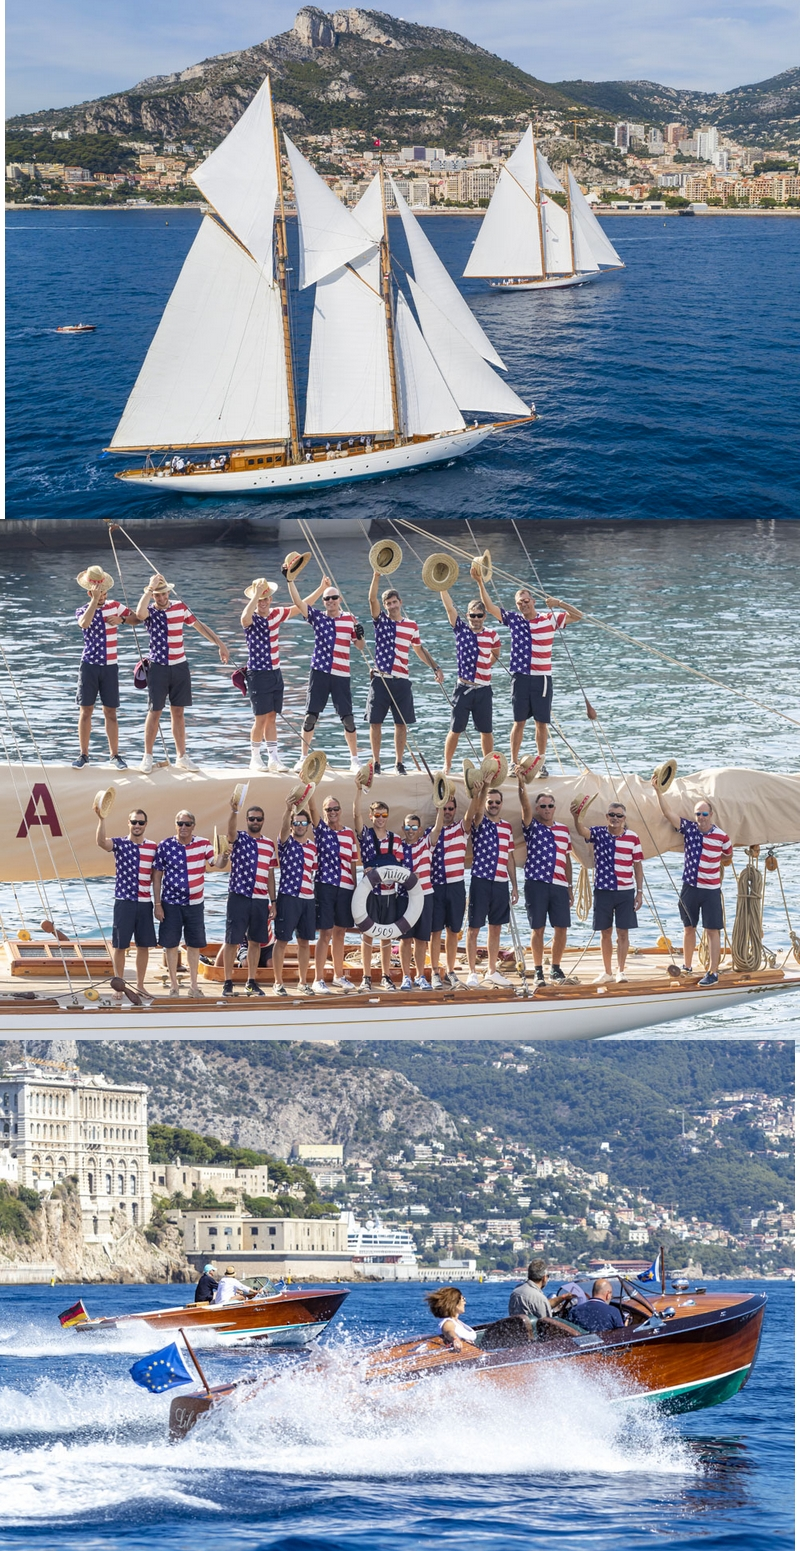 -02- 2019 Monaco Classic Week - Yacht Club de Monaco pays tribute to American yachts from 1851 to 1973